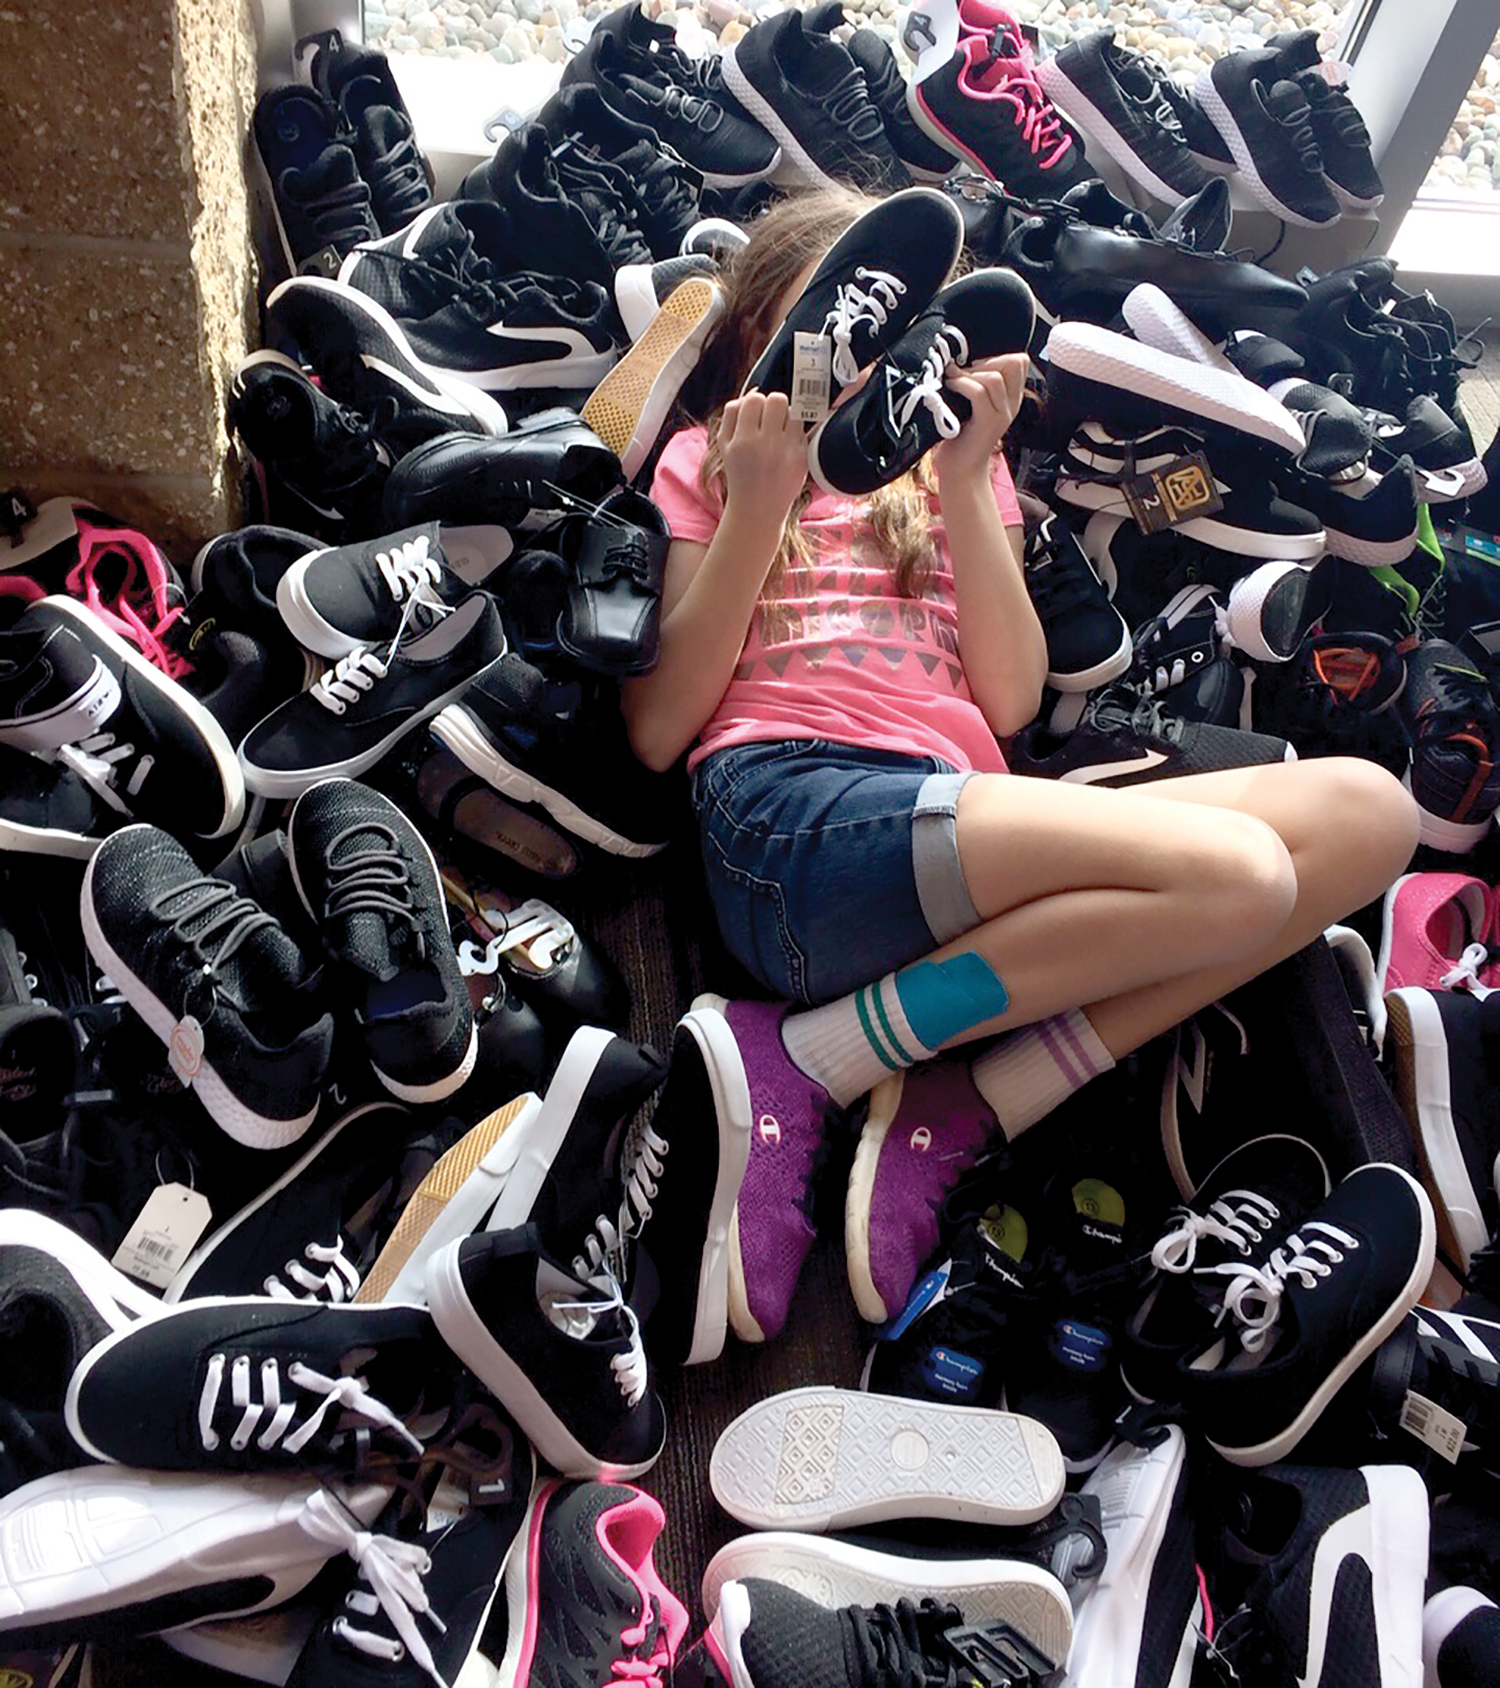 Congratulations to South Church in Lansing, Michigan, for collecting 628 pairs of sneakers.